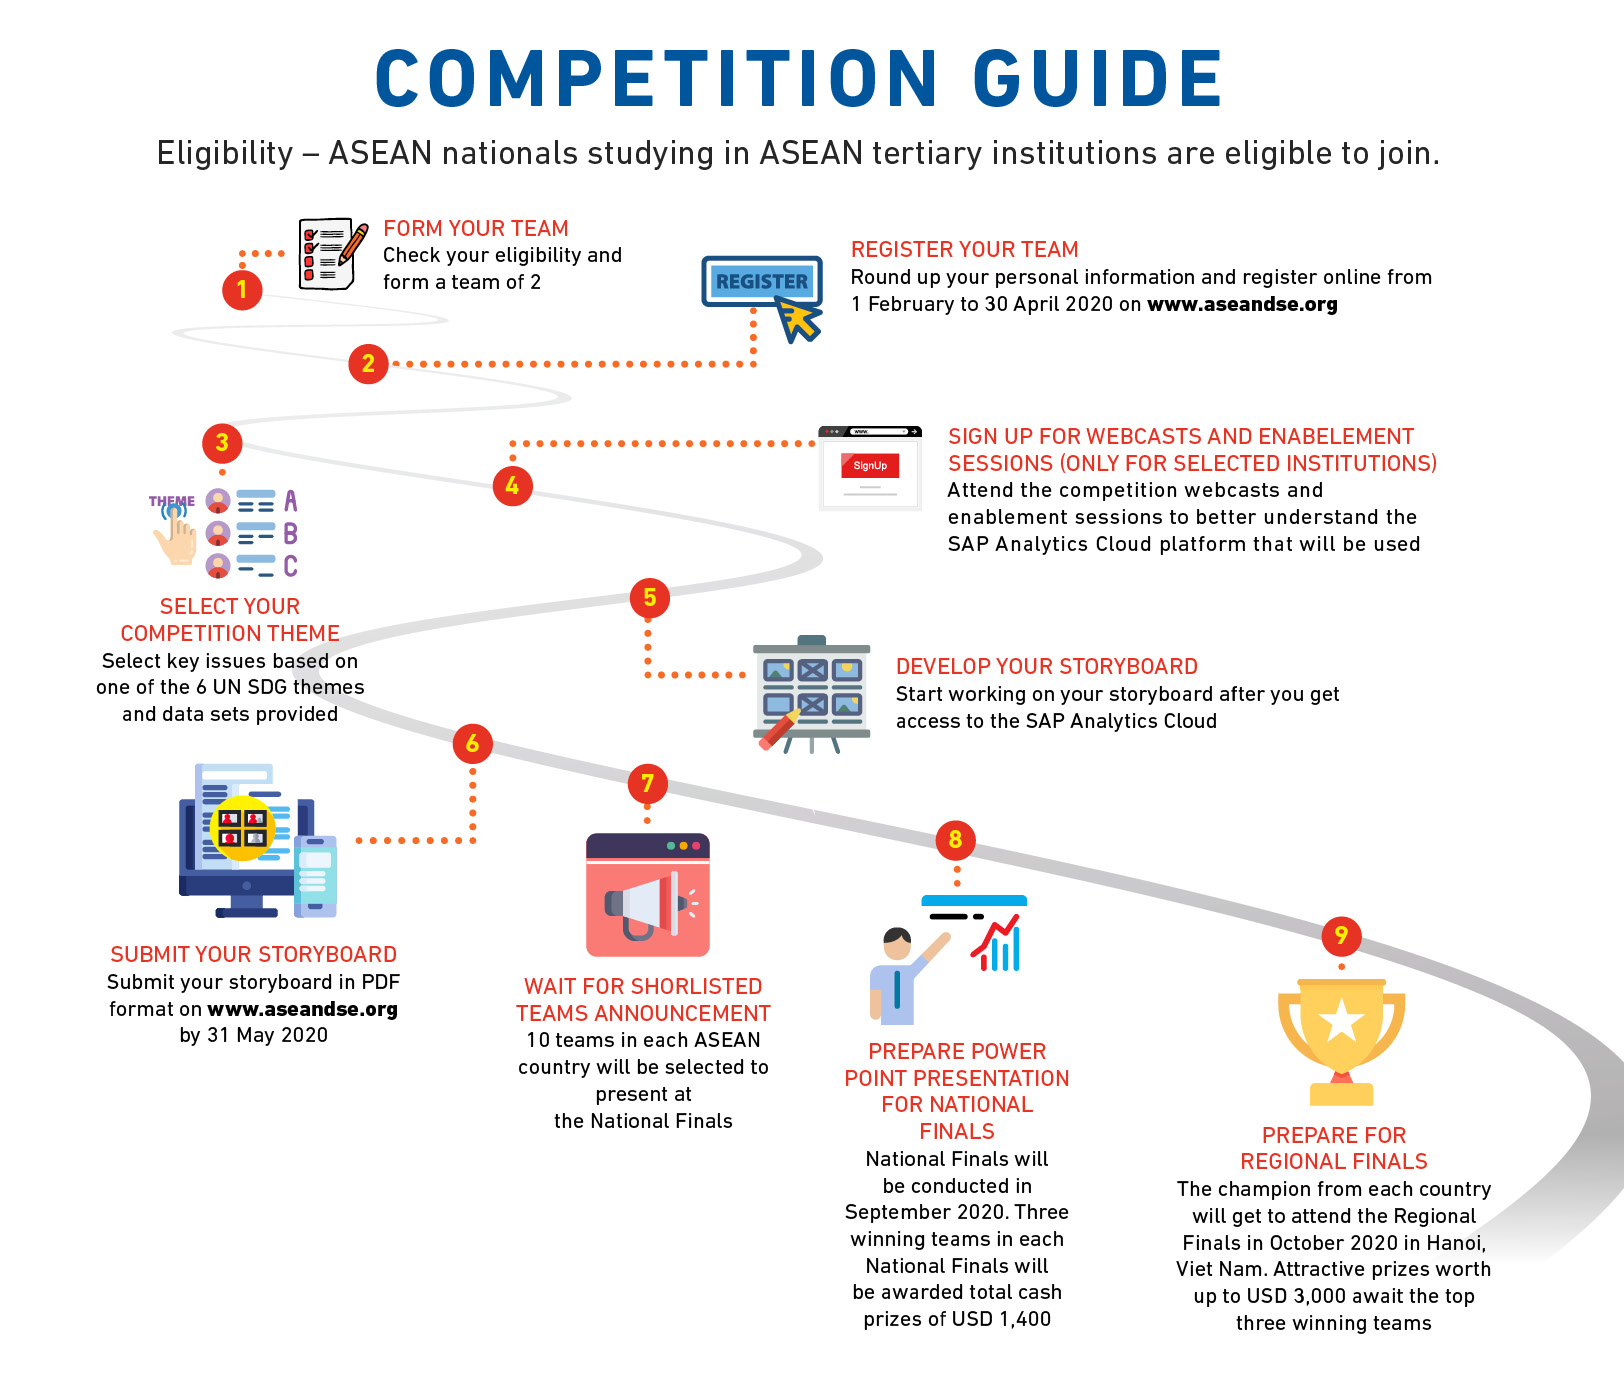 SAP ASEAN Data Science Explorers (ADSE) 2020 for Asean Youths competition guide